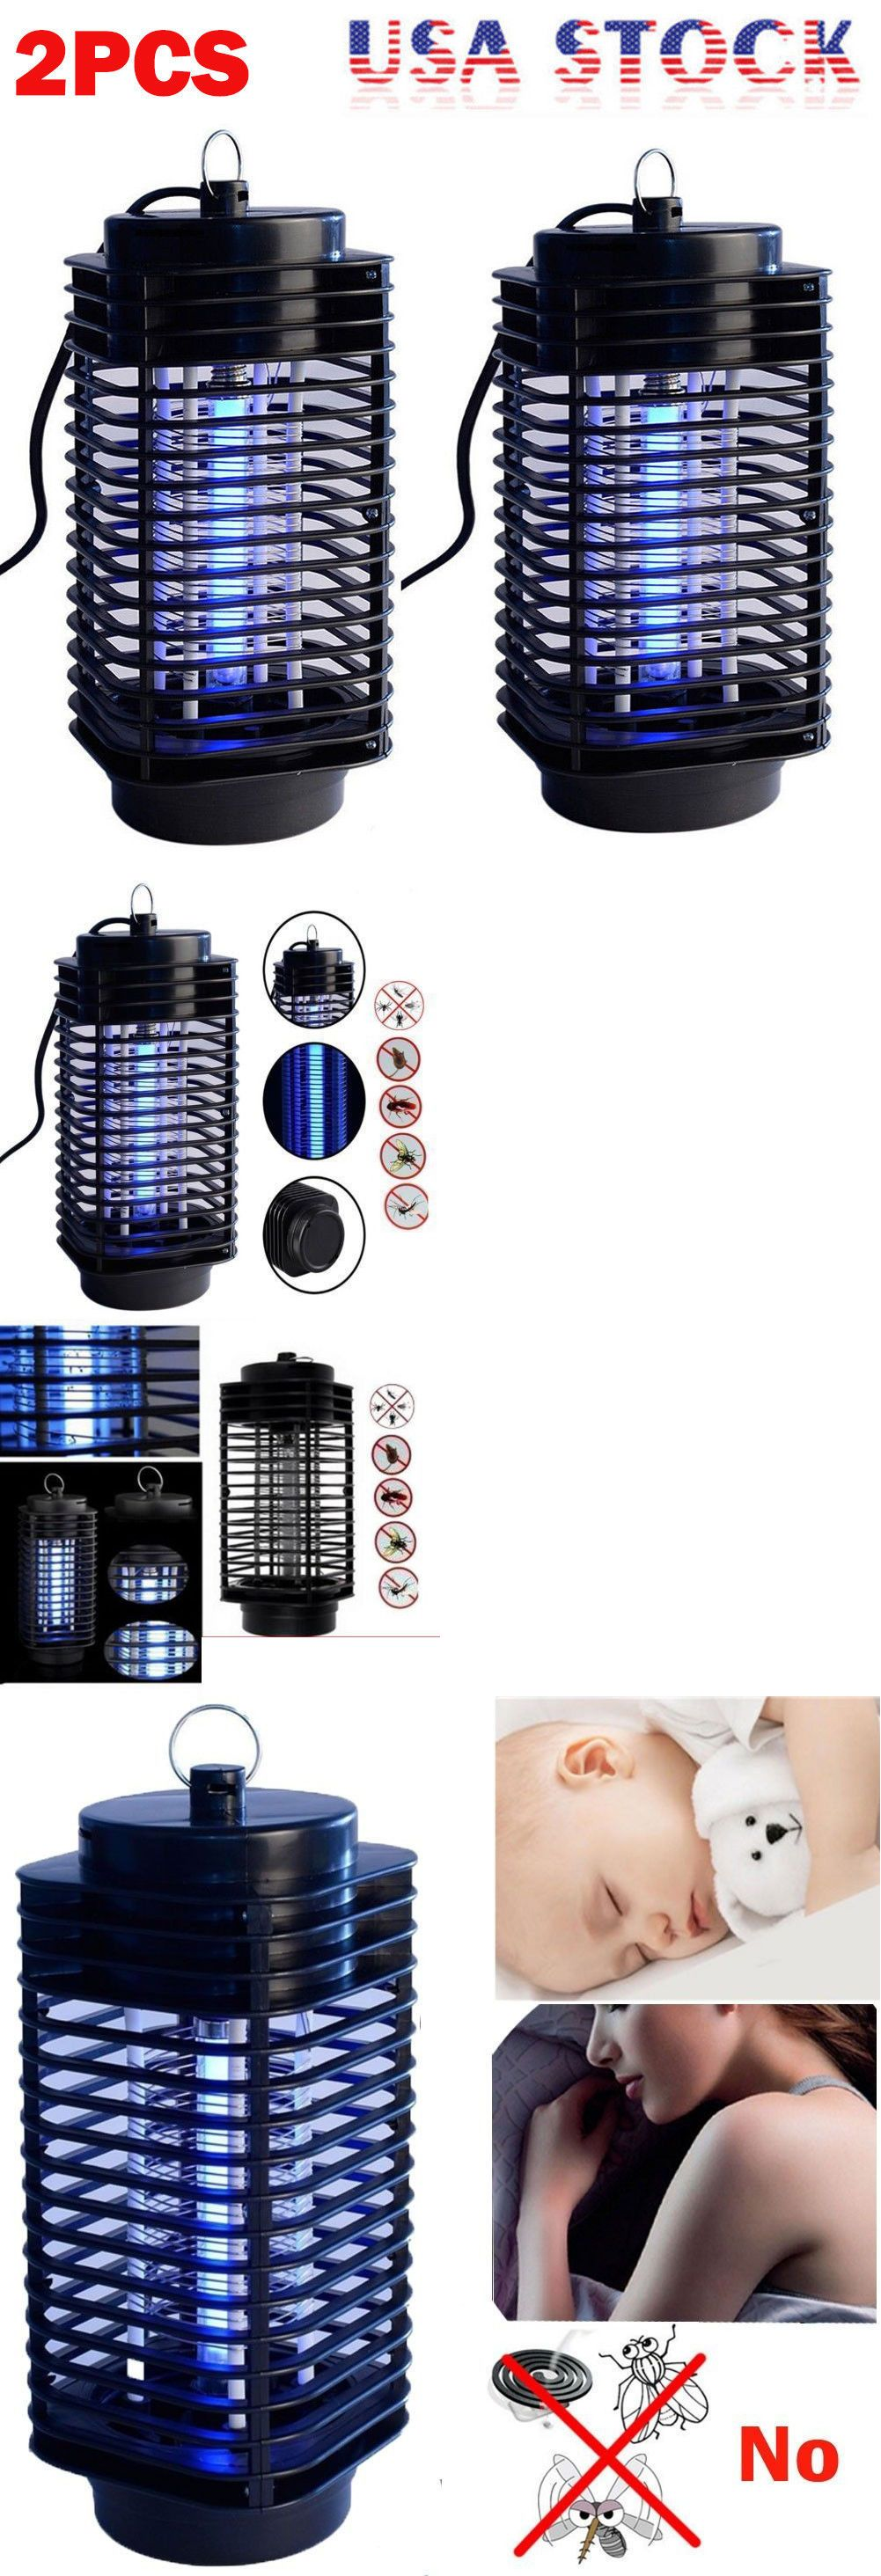 2pcs Electric Mosquito Fly Bug Insect Zapper Killer Trap Lamp 110v Wiring Diagram Further On Zappers 181040 Stinger Pest Buy It Now Only 1795 Ebay